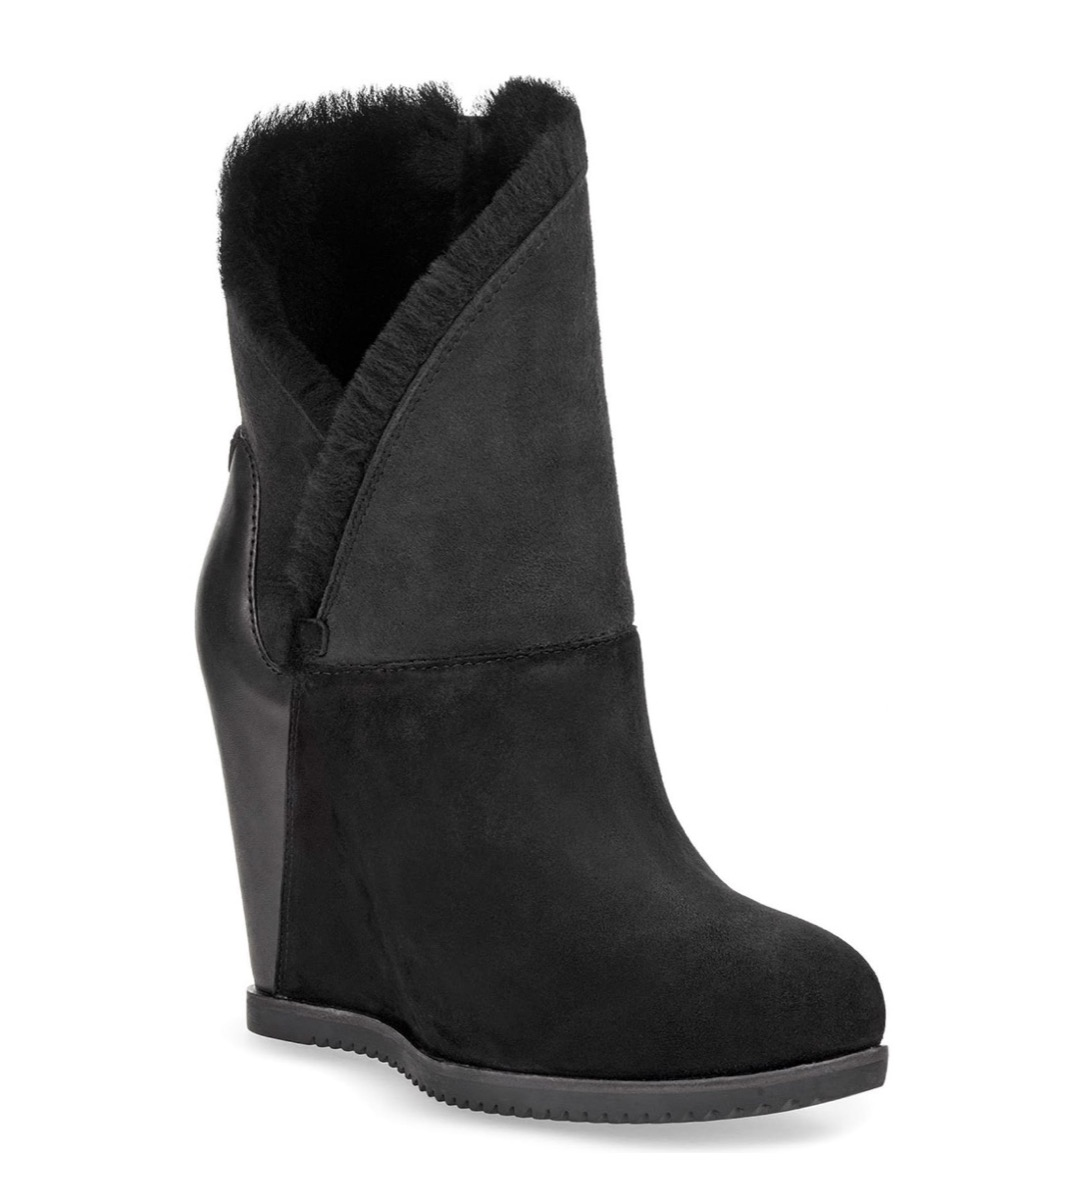 black boots with shearling lining